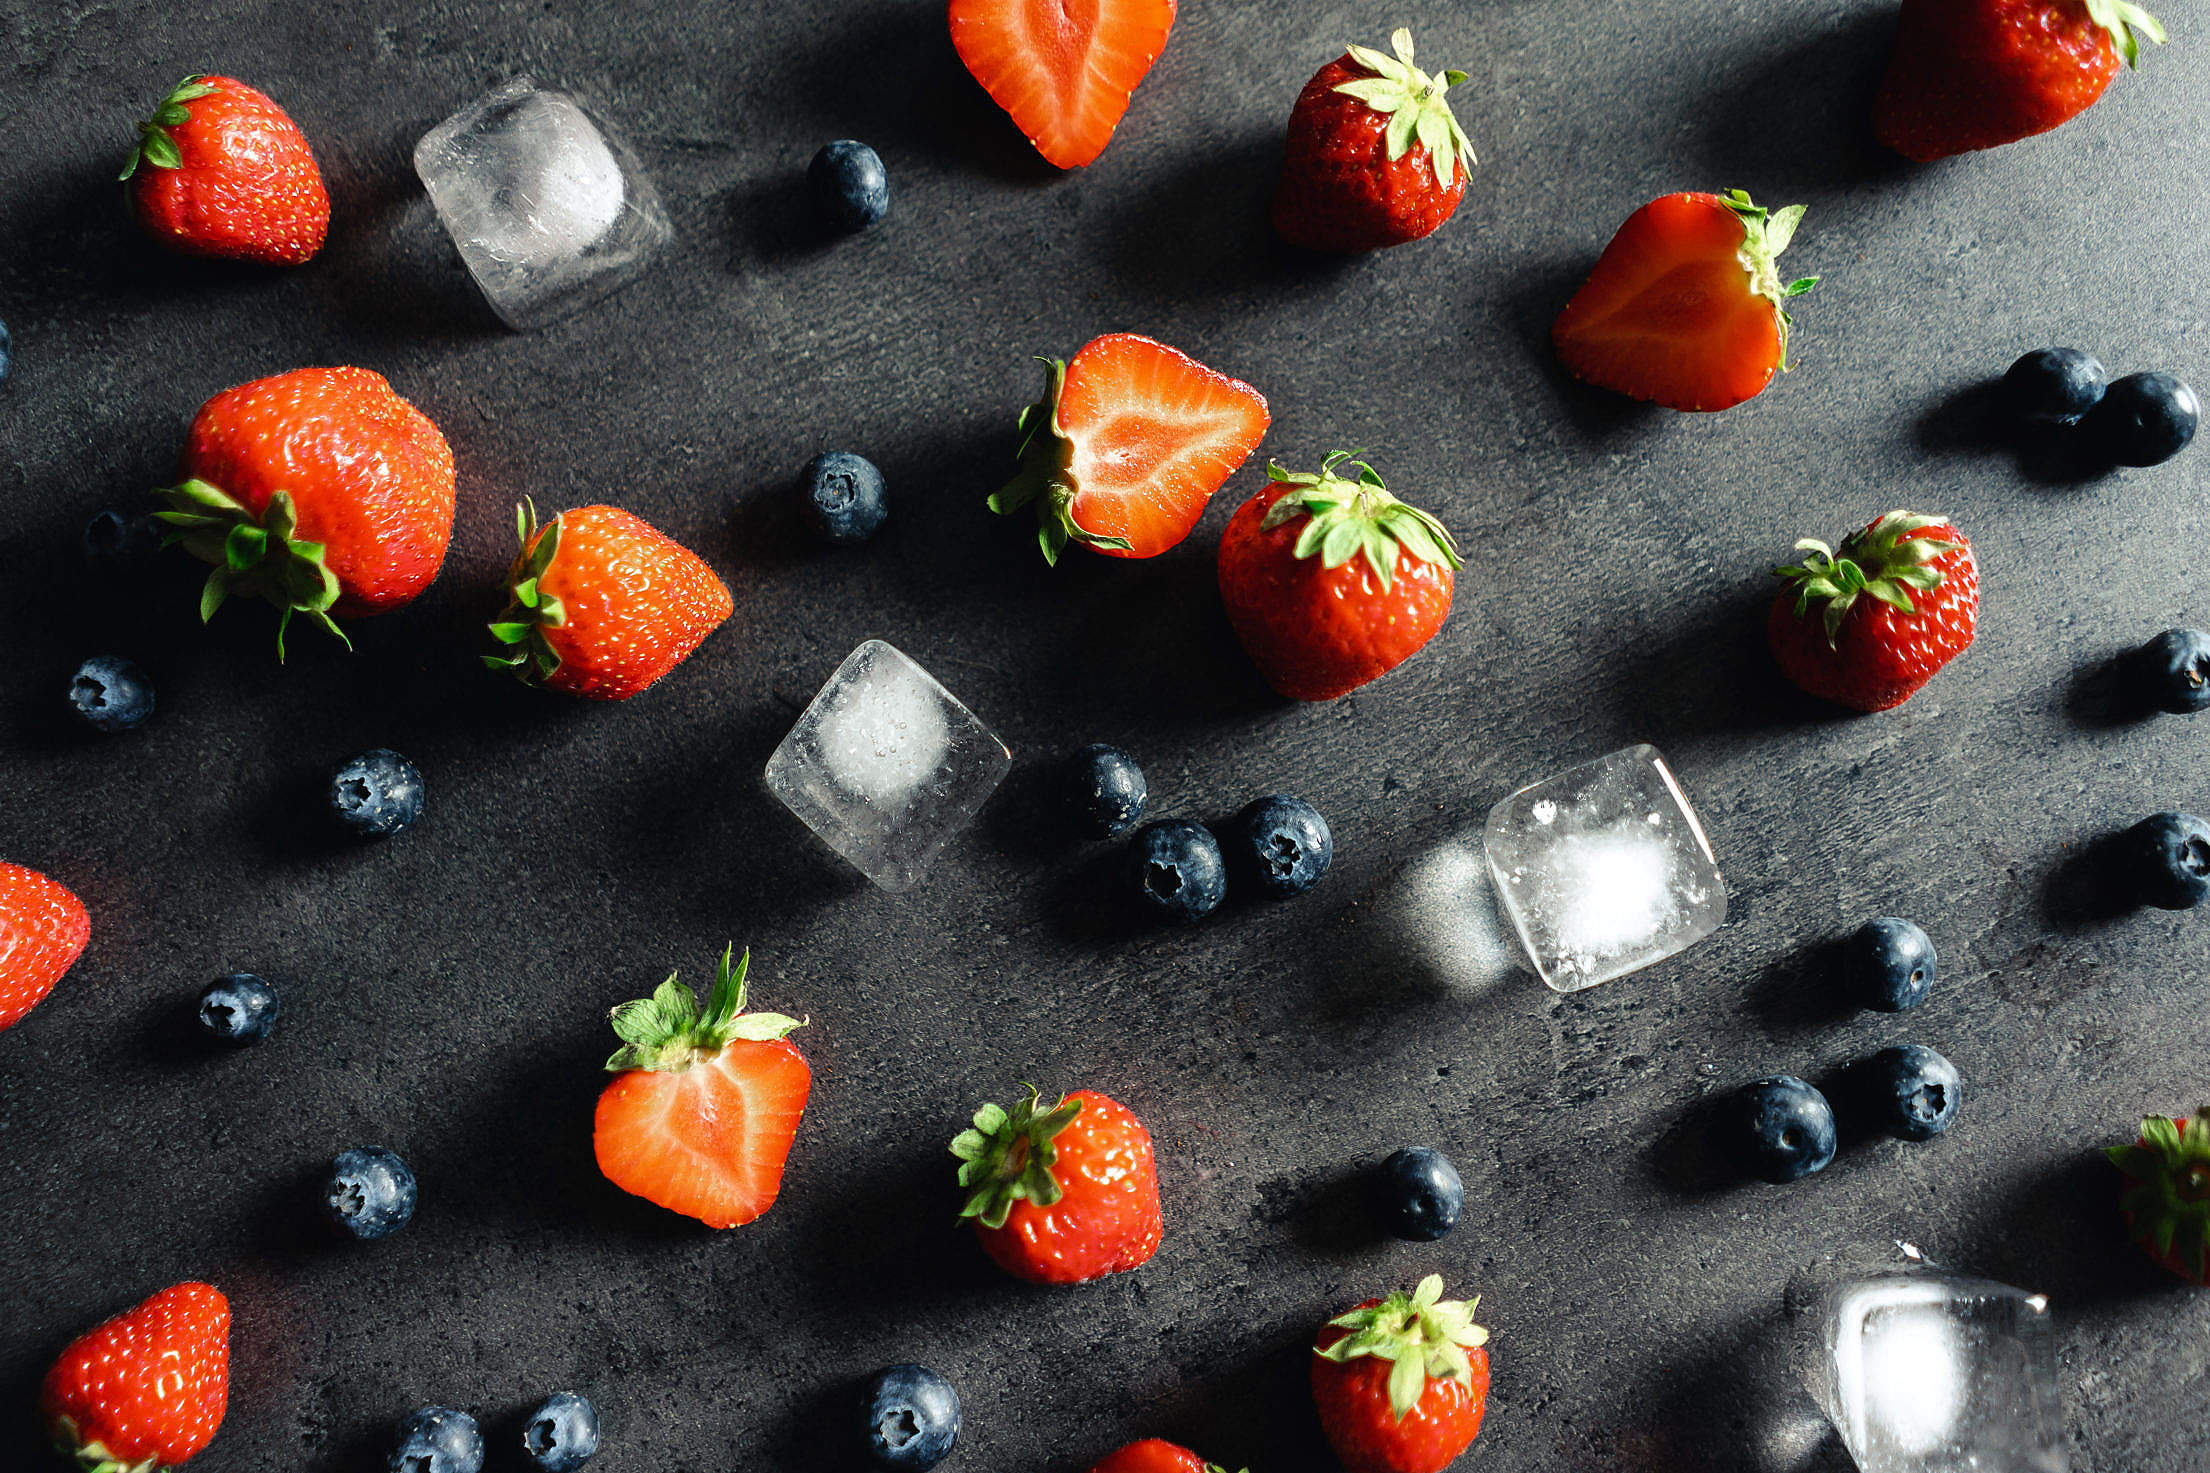 Strawberries and Blueberries Flat Lay on a Dark Background Free Stock Photo